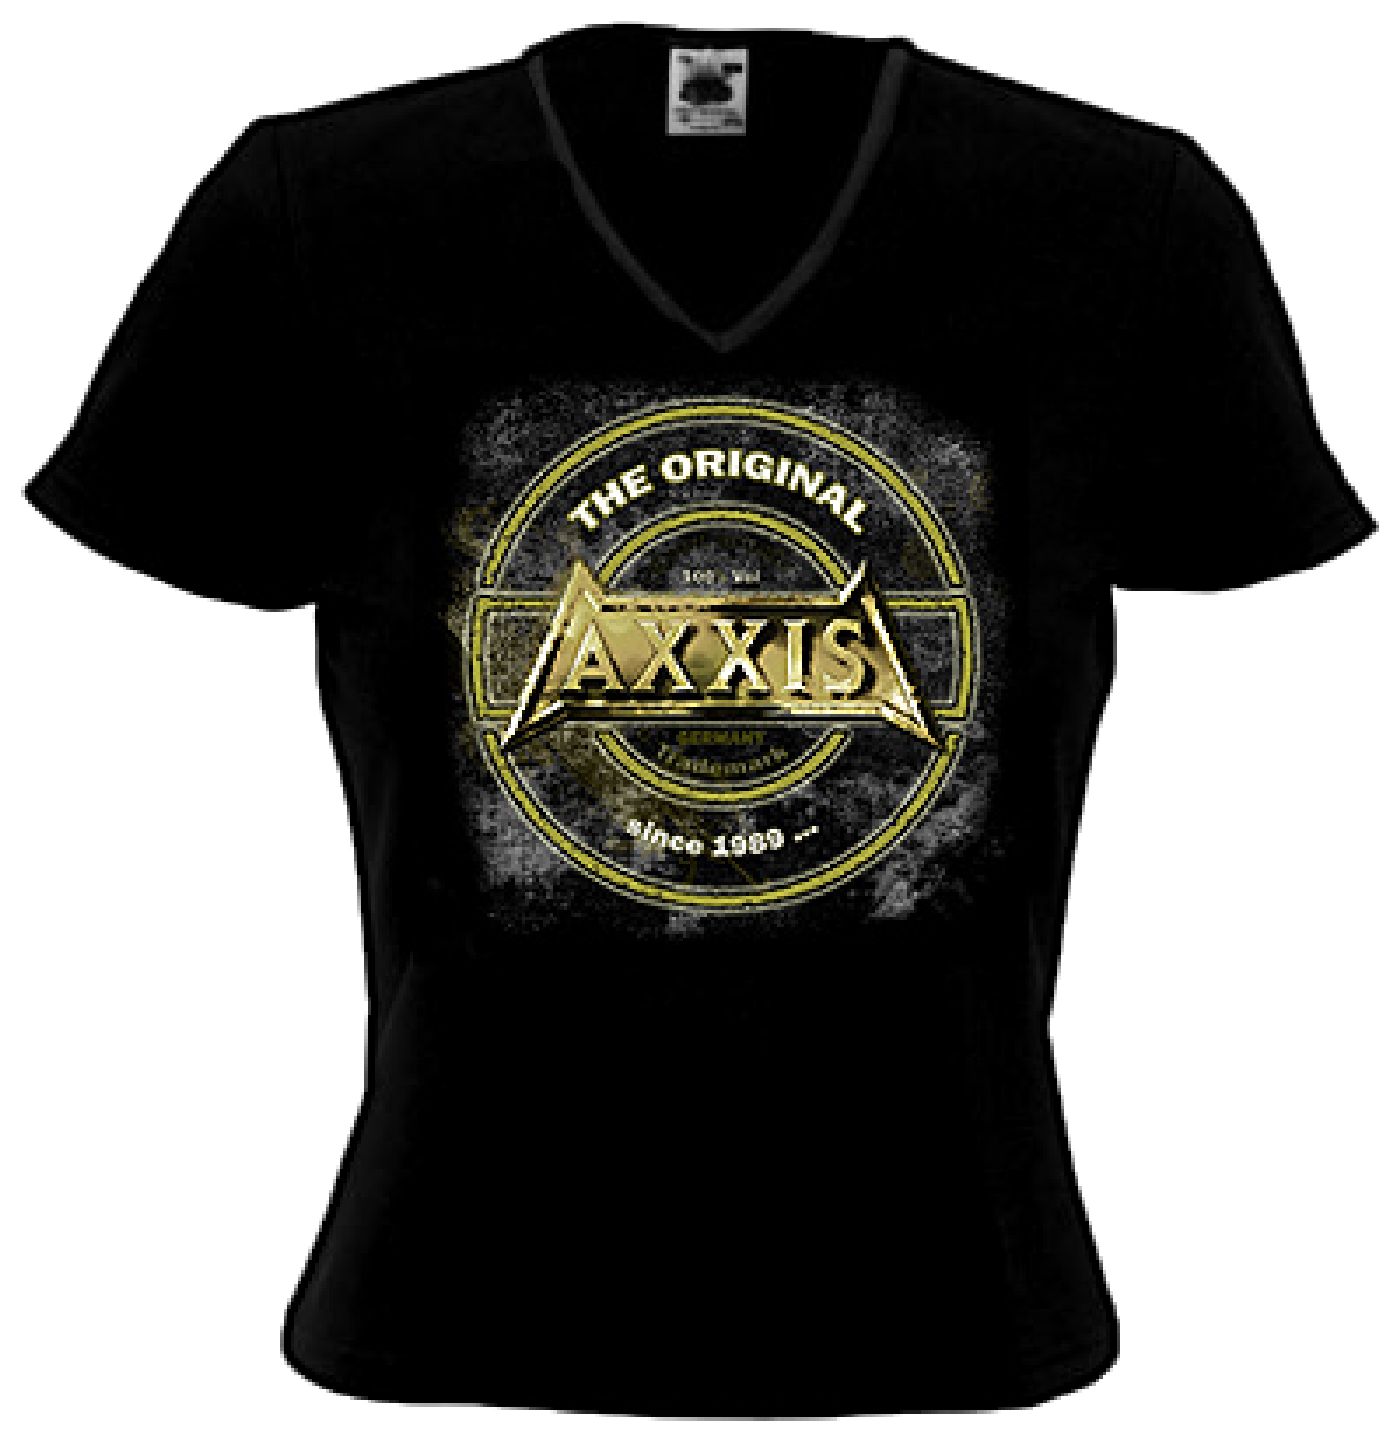 AXXIS Girlie Original